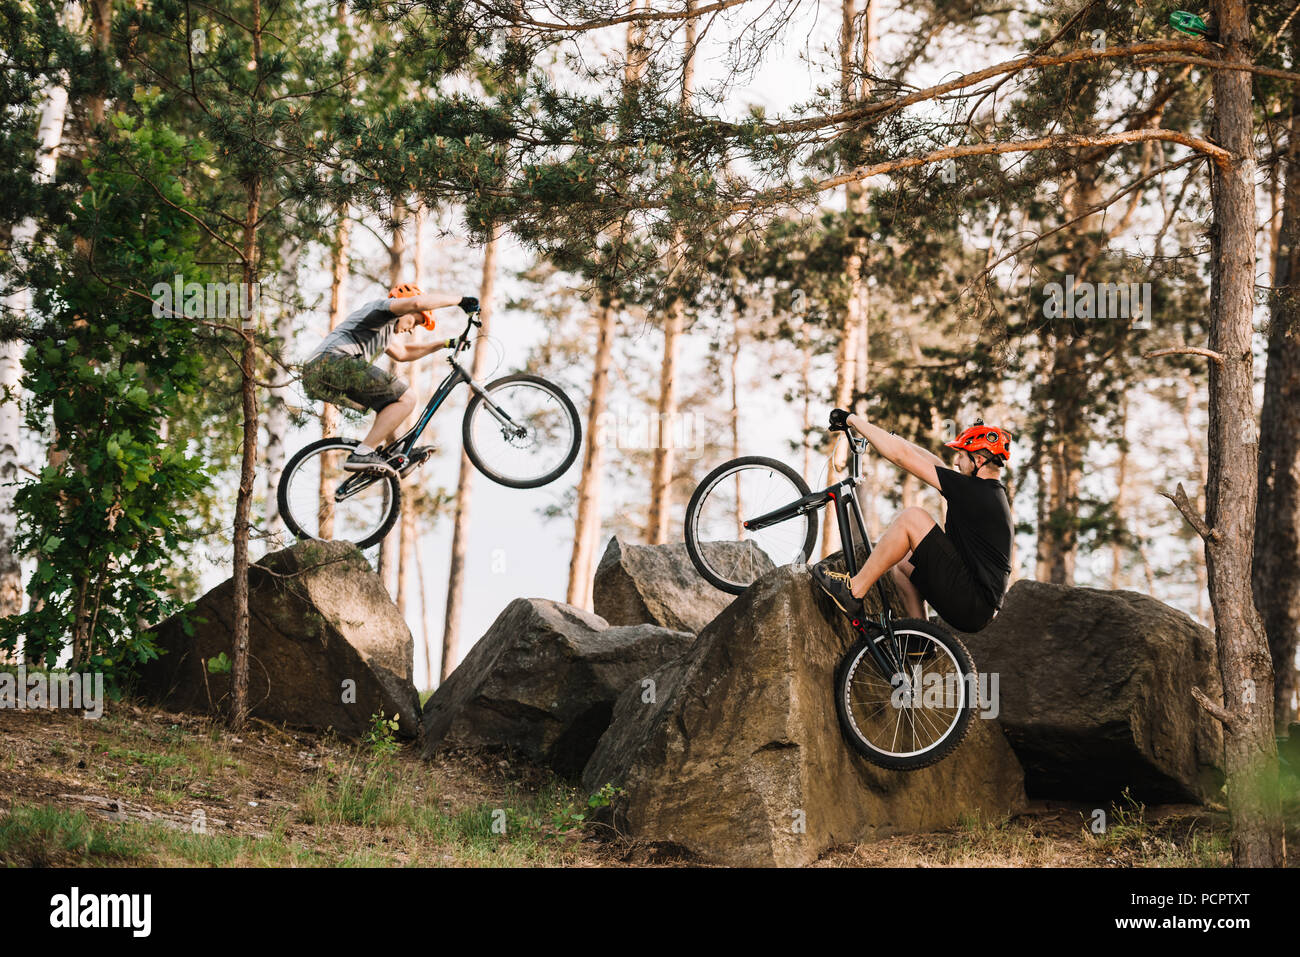 active trial bikers performing stunts on rocks outdoors - Stock Image